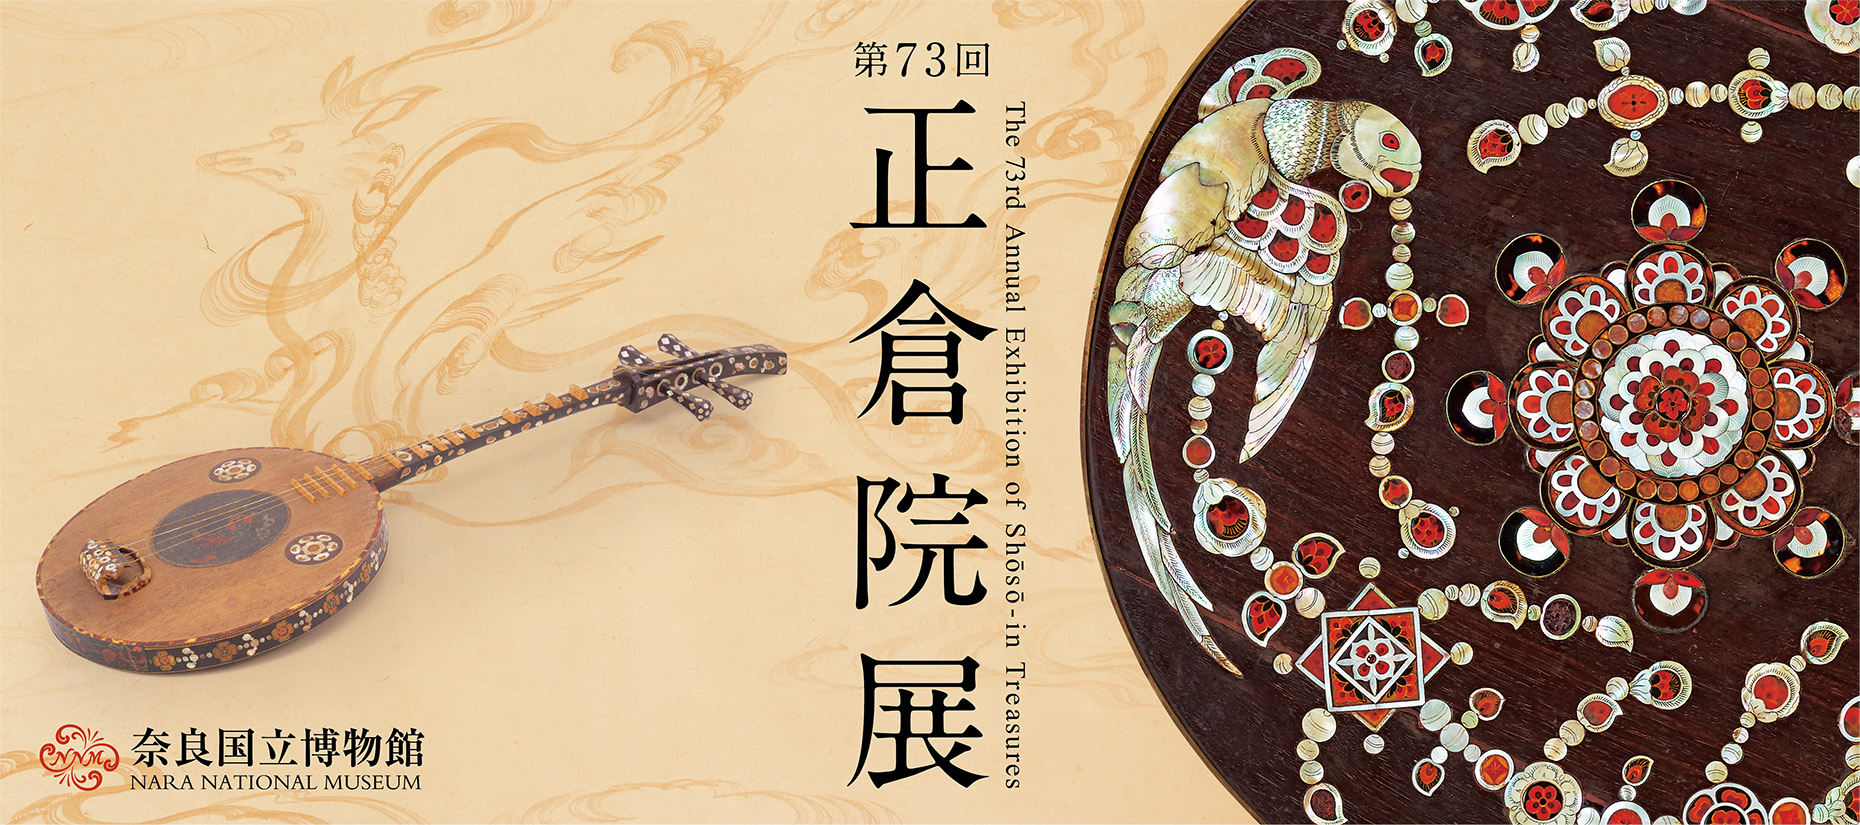 The 73rd Annual Exhibition of Shōsō-in Treasures